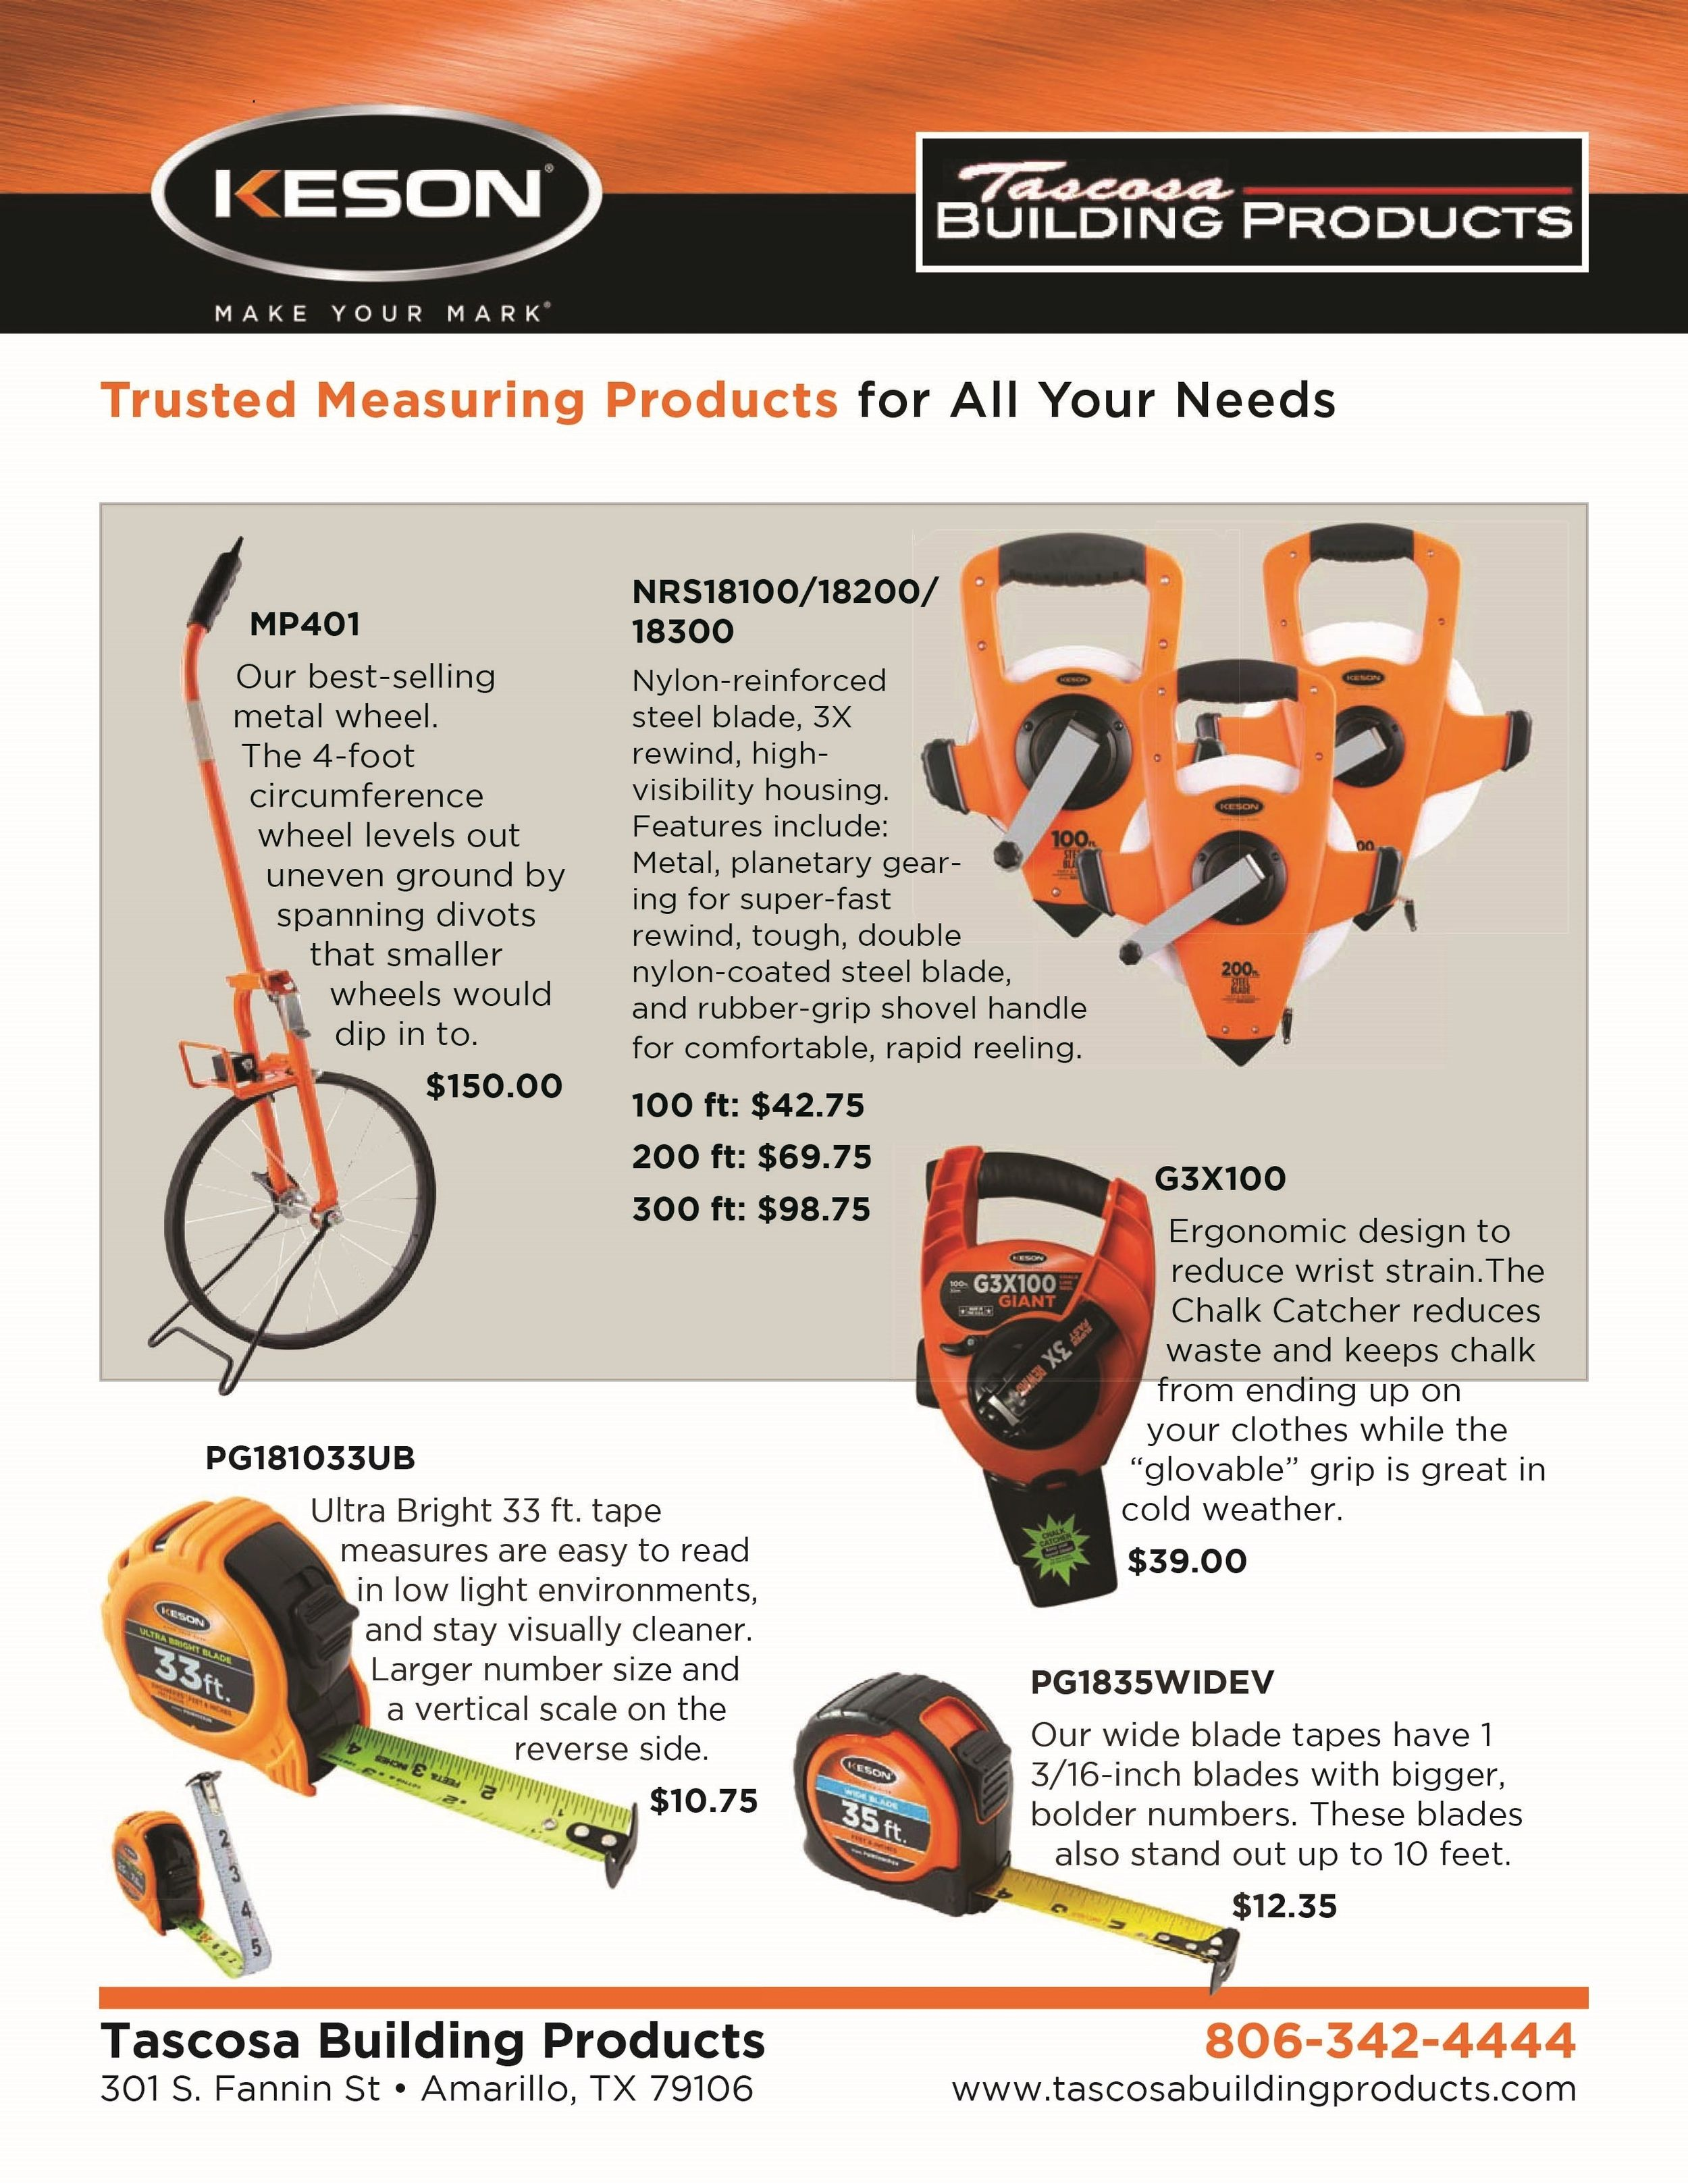 Keson trusted measuring products trust rewind